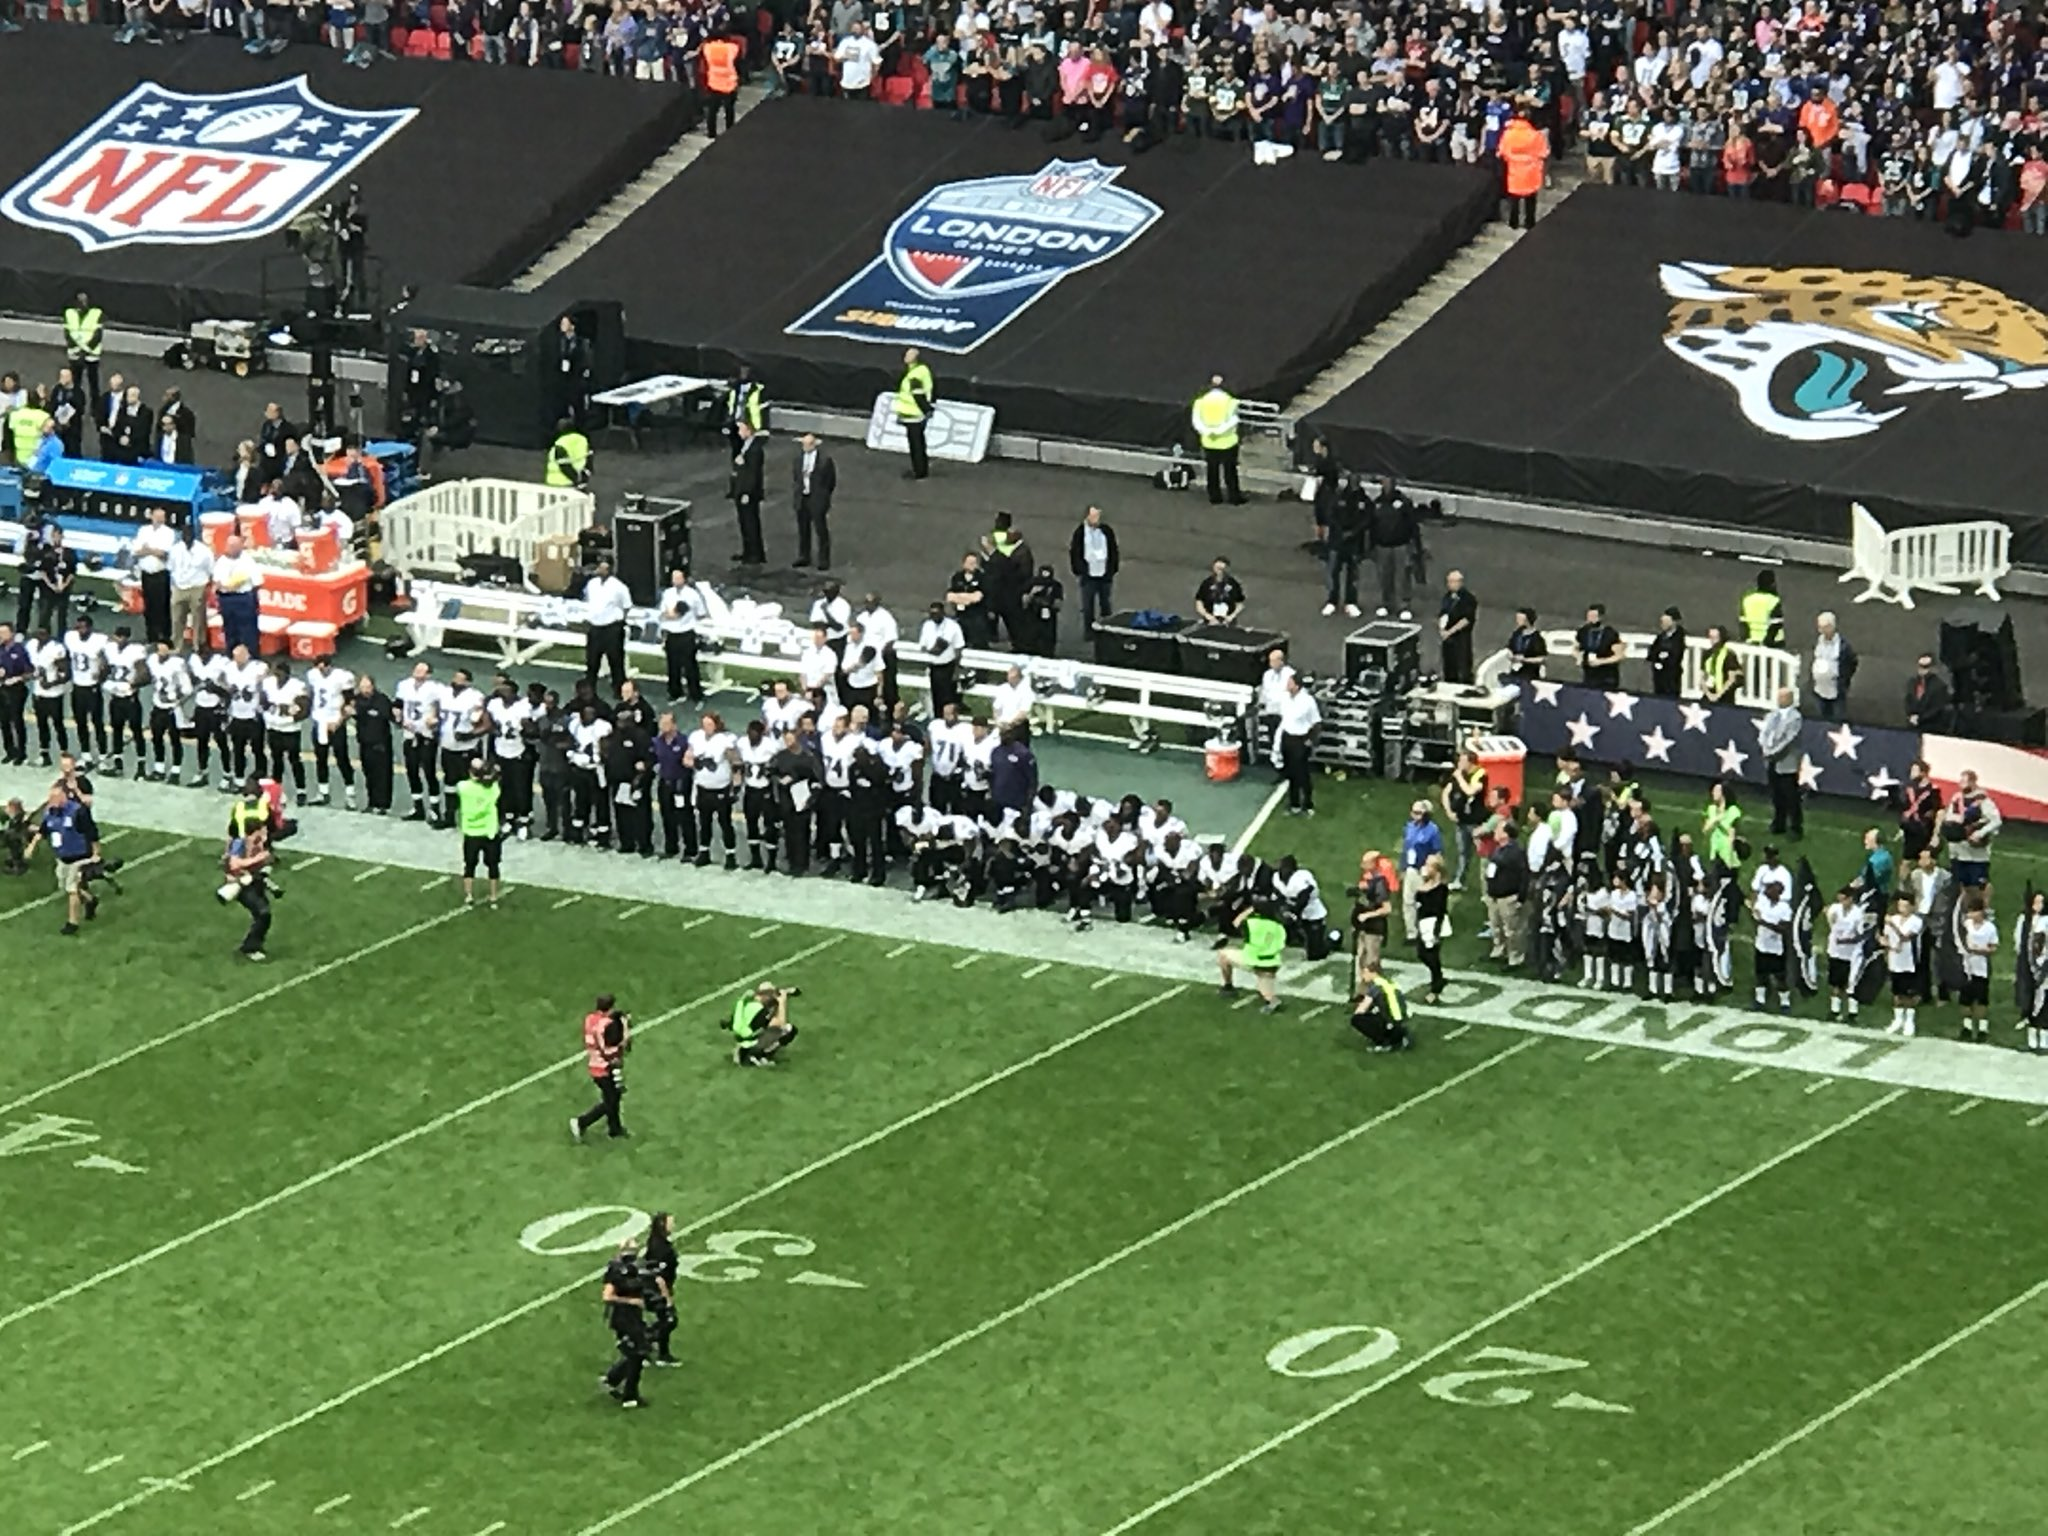 RT @ThatChris1209: Group kneeling for the anthem on the Ravens sideline. First of a big day #NFLUK https://t.co/lk9QdDHZ6h